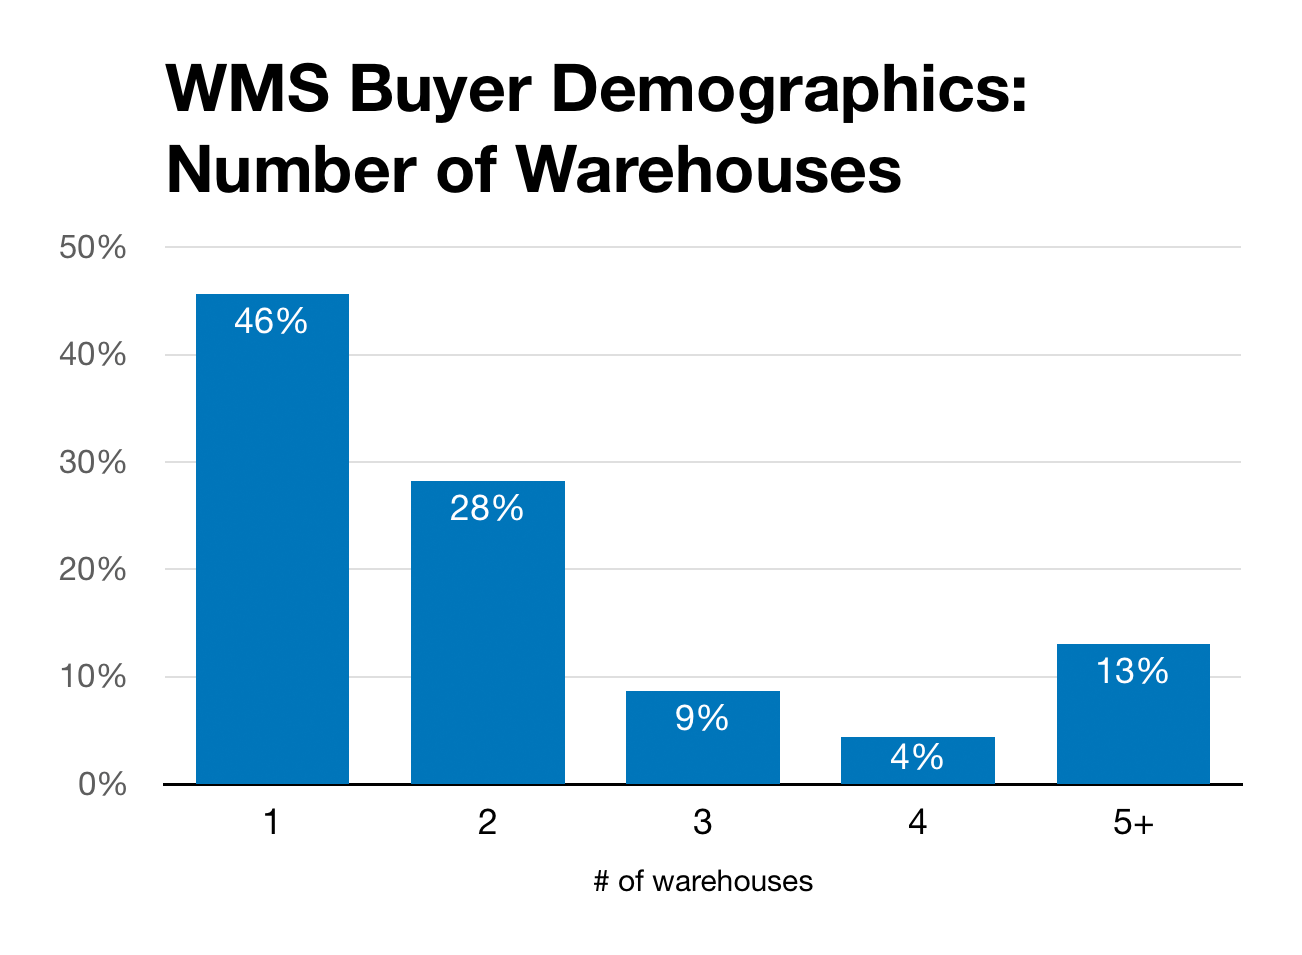 Chart of warehouse counts for WMS buyers